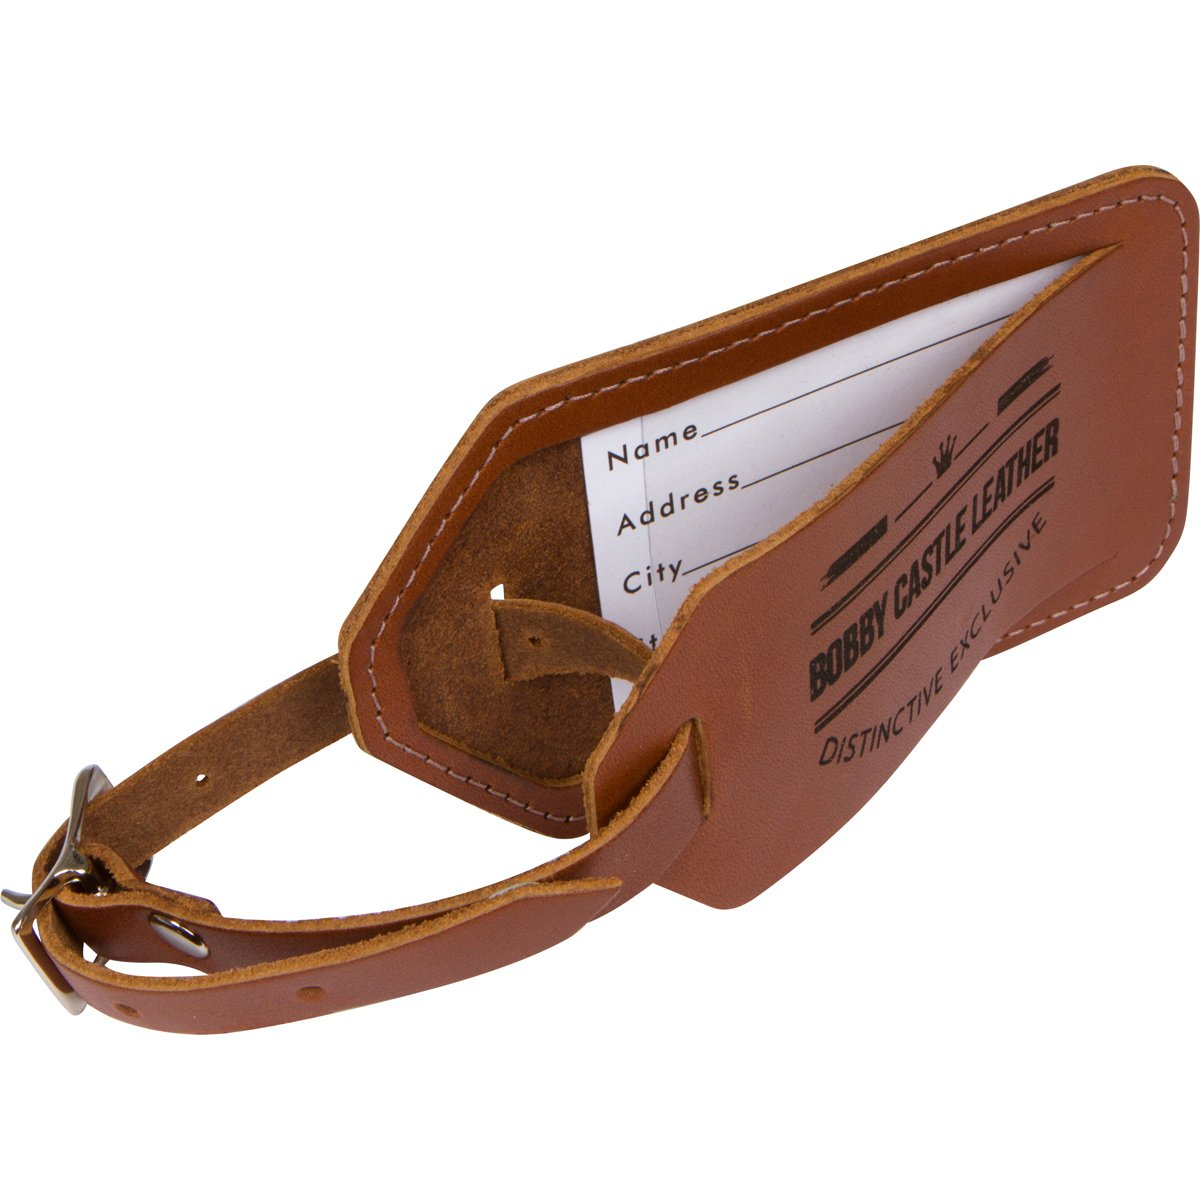 Bobby Castle Genuine Leather Luggage Tag MADE IN THE USA Bag Tag travel tag Unique Luggage ID Tag with Privacy Flap and Suitcase Label for Easier Safe Secure Airline Business Travel